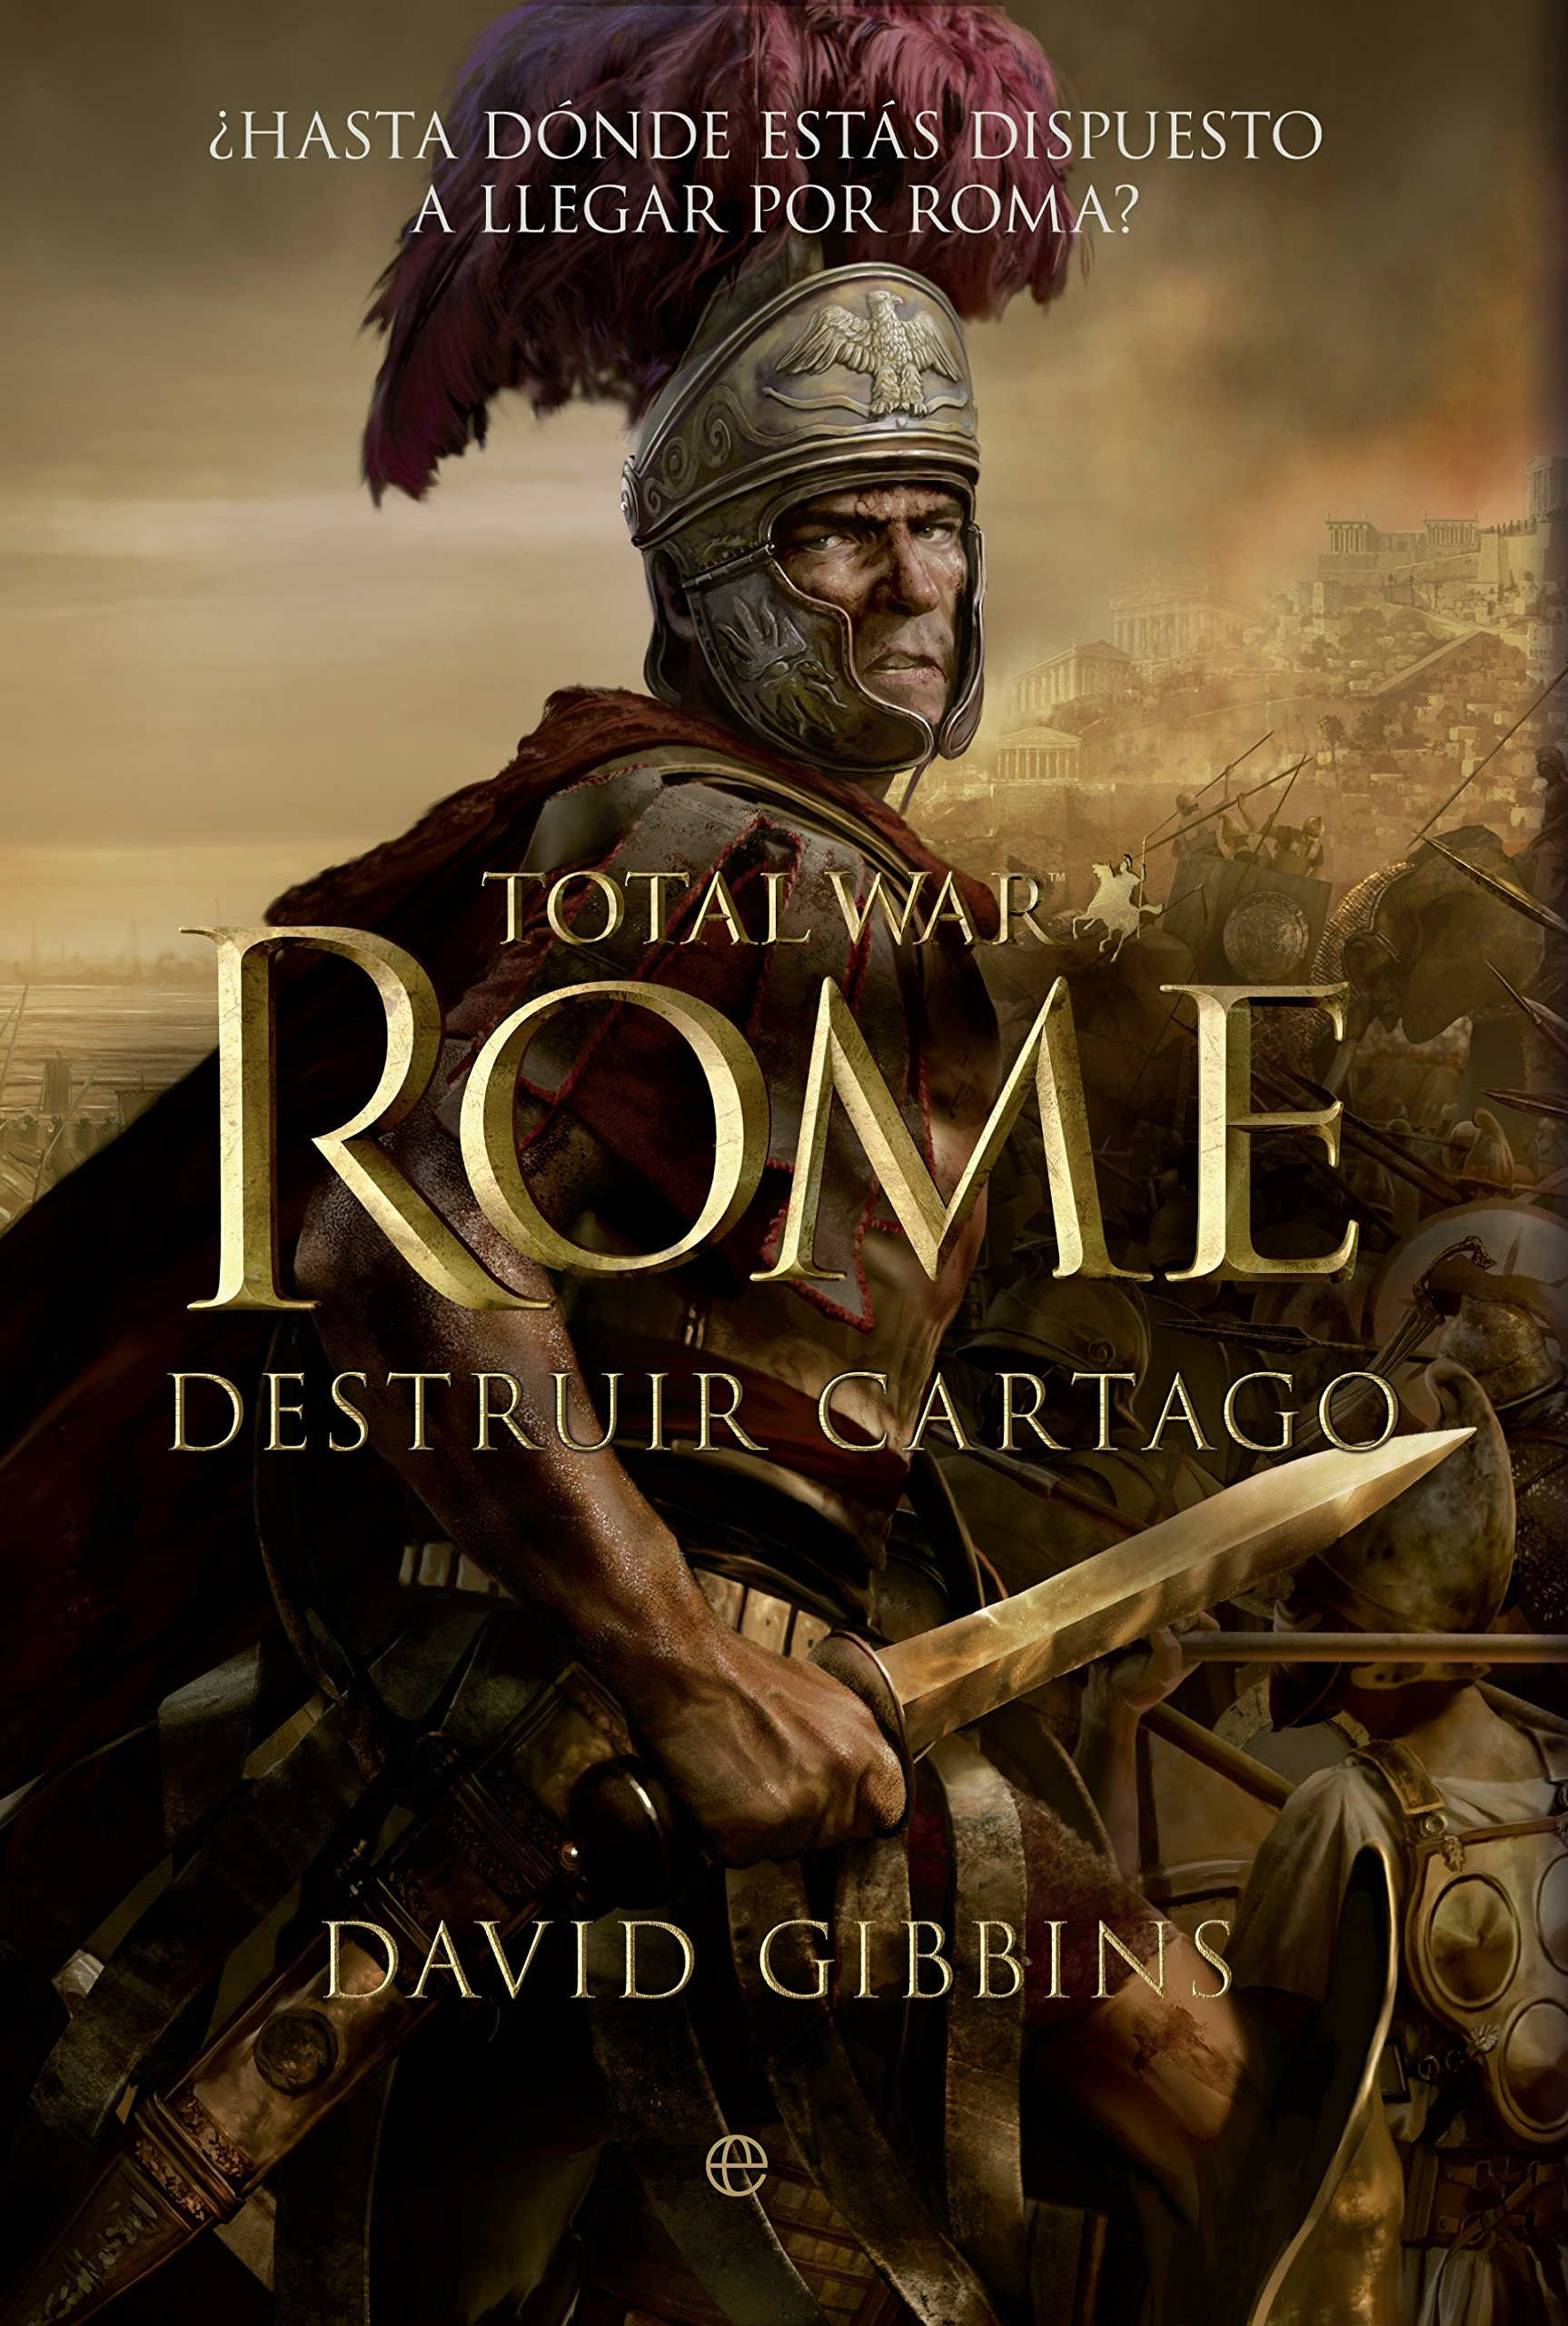 Total War. Rome. Destruir Cartago (Ficción histórica): Amazon.es: David Gibbins, Paz Pruneda: Libros